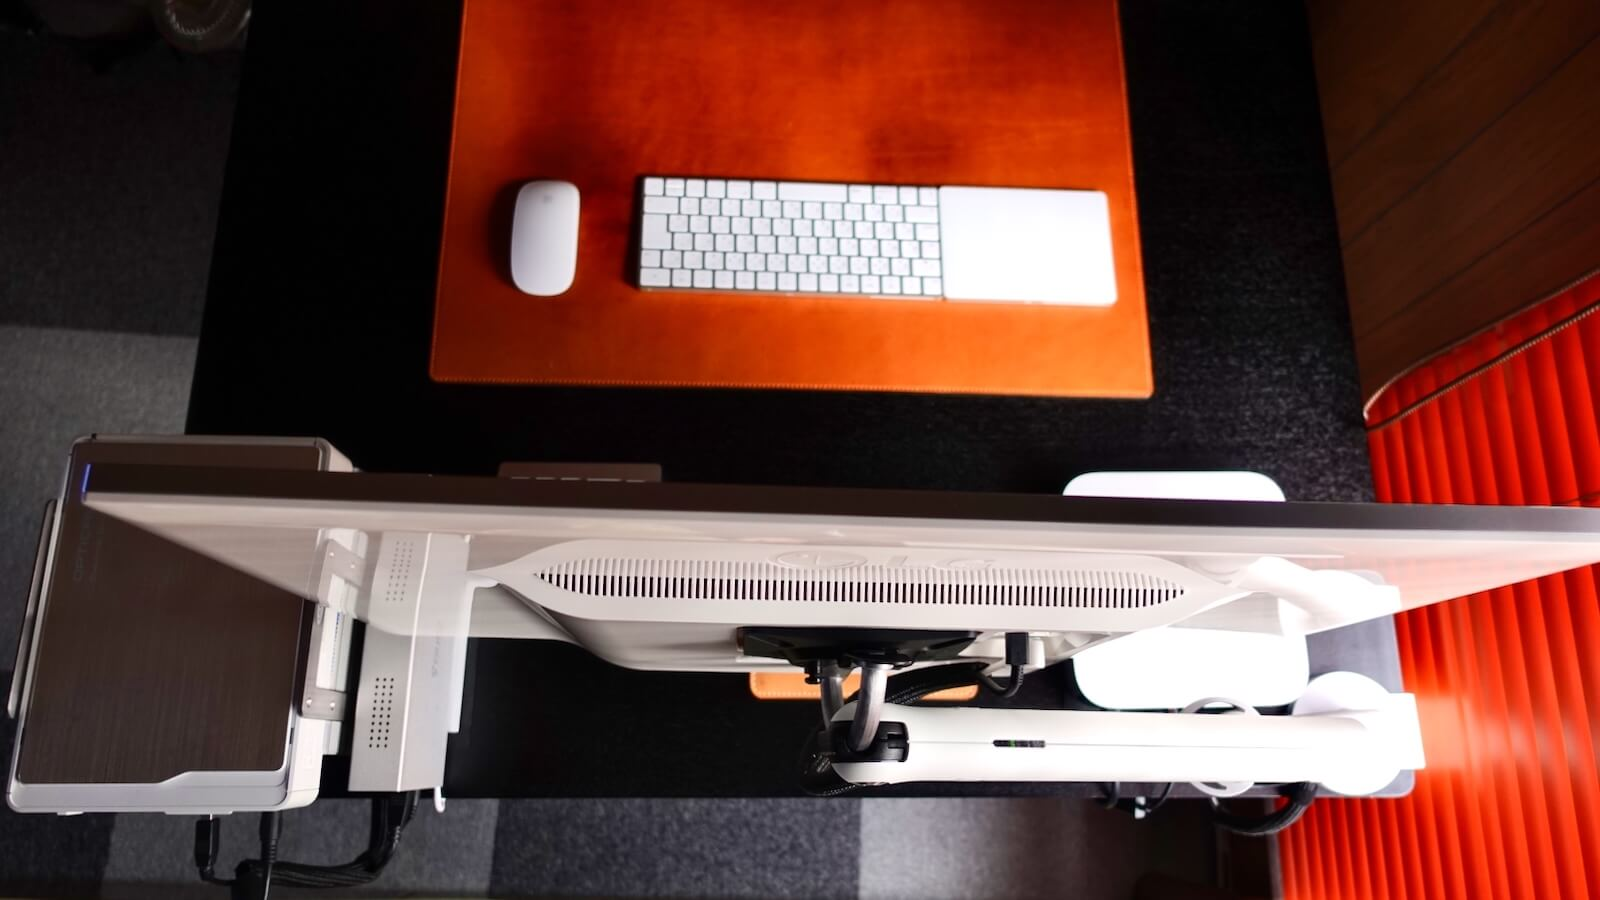 Herman Miller Flo Monitor Arm installed on the left edge of the table